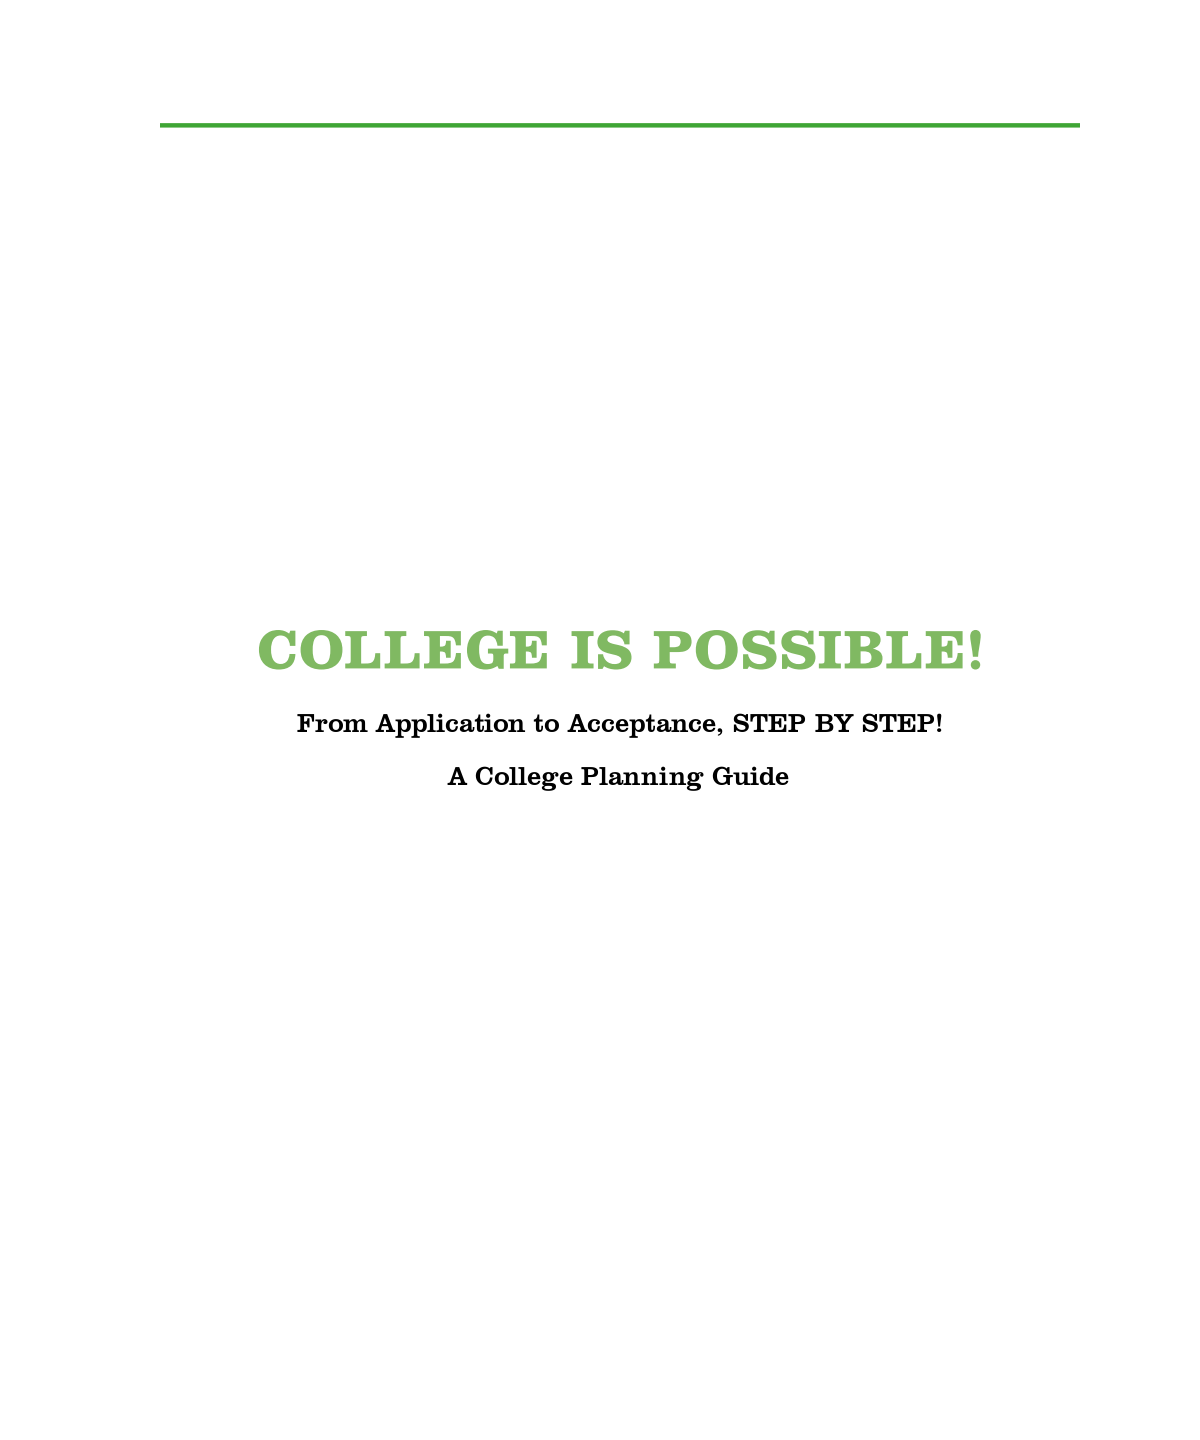 College Is Possible!